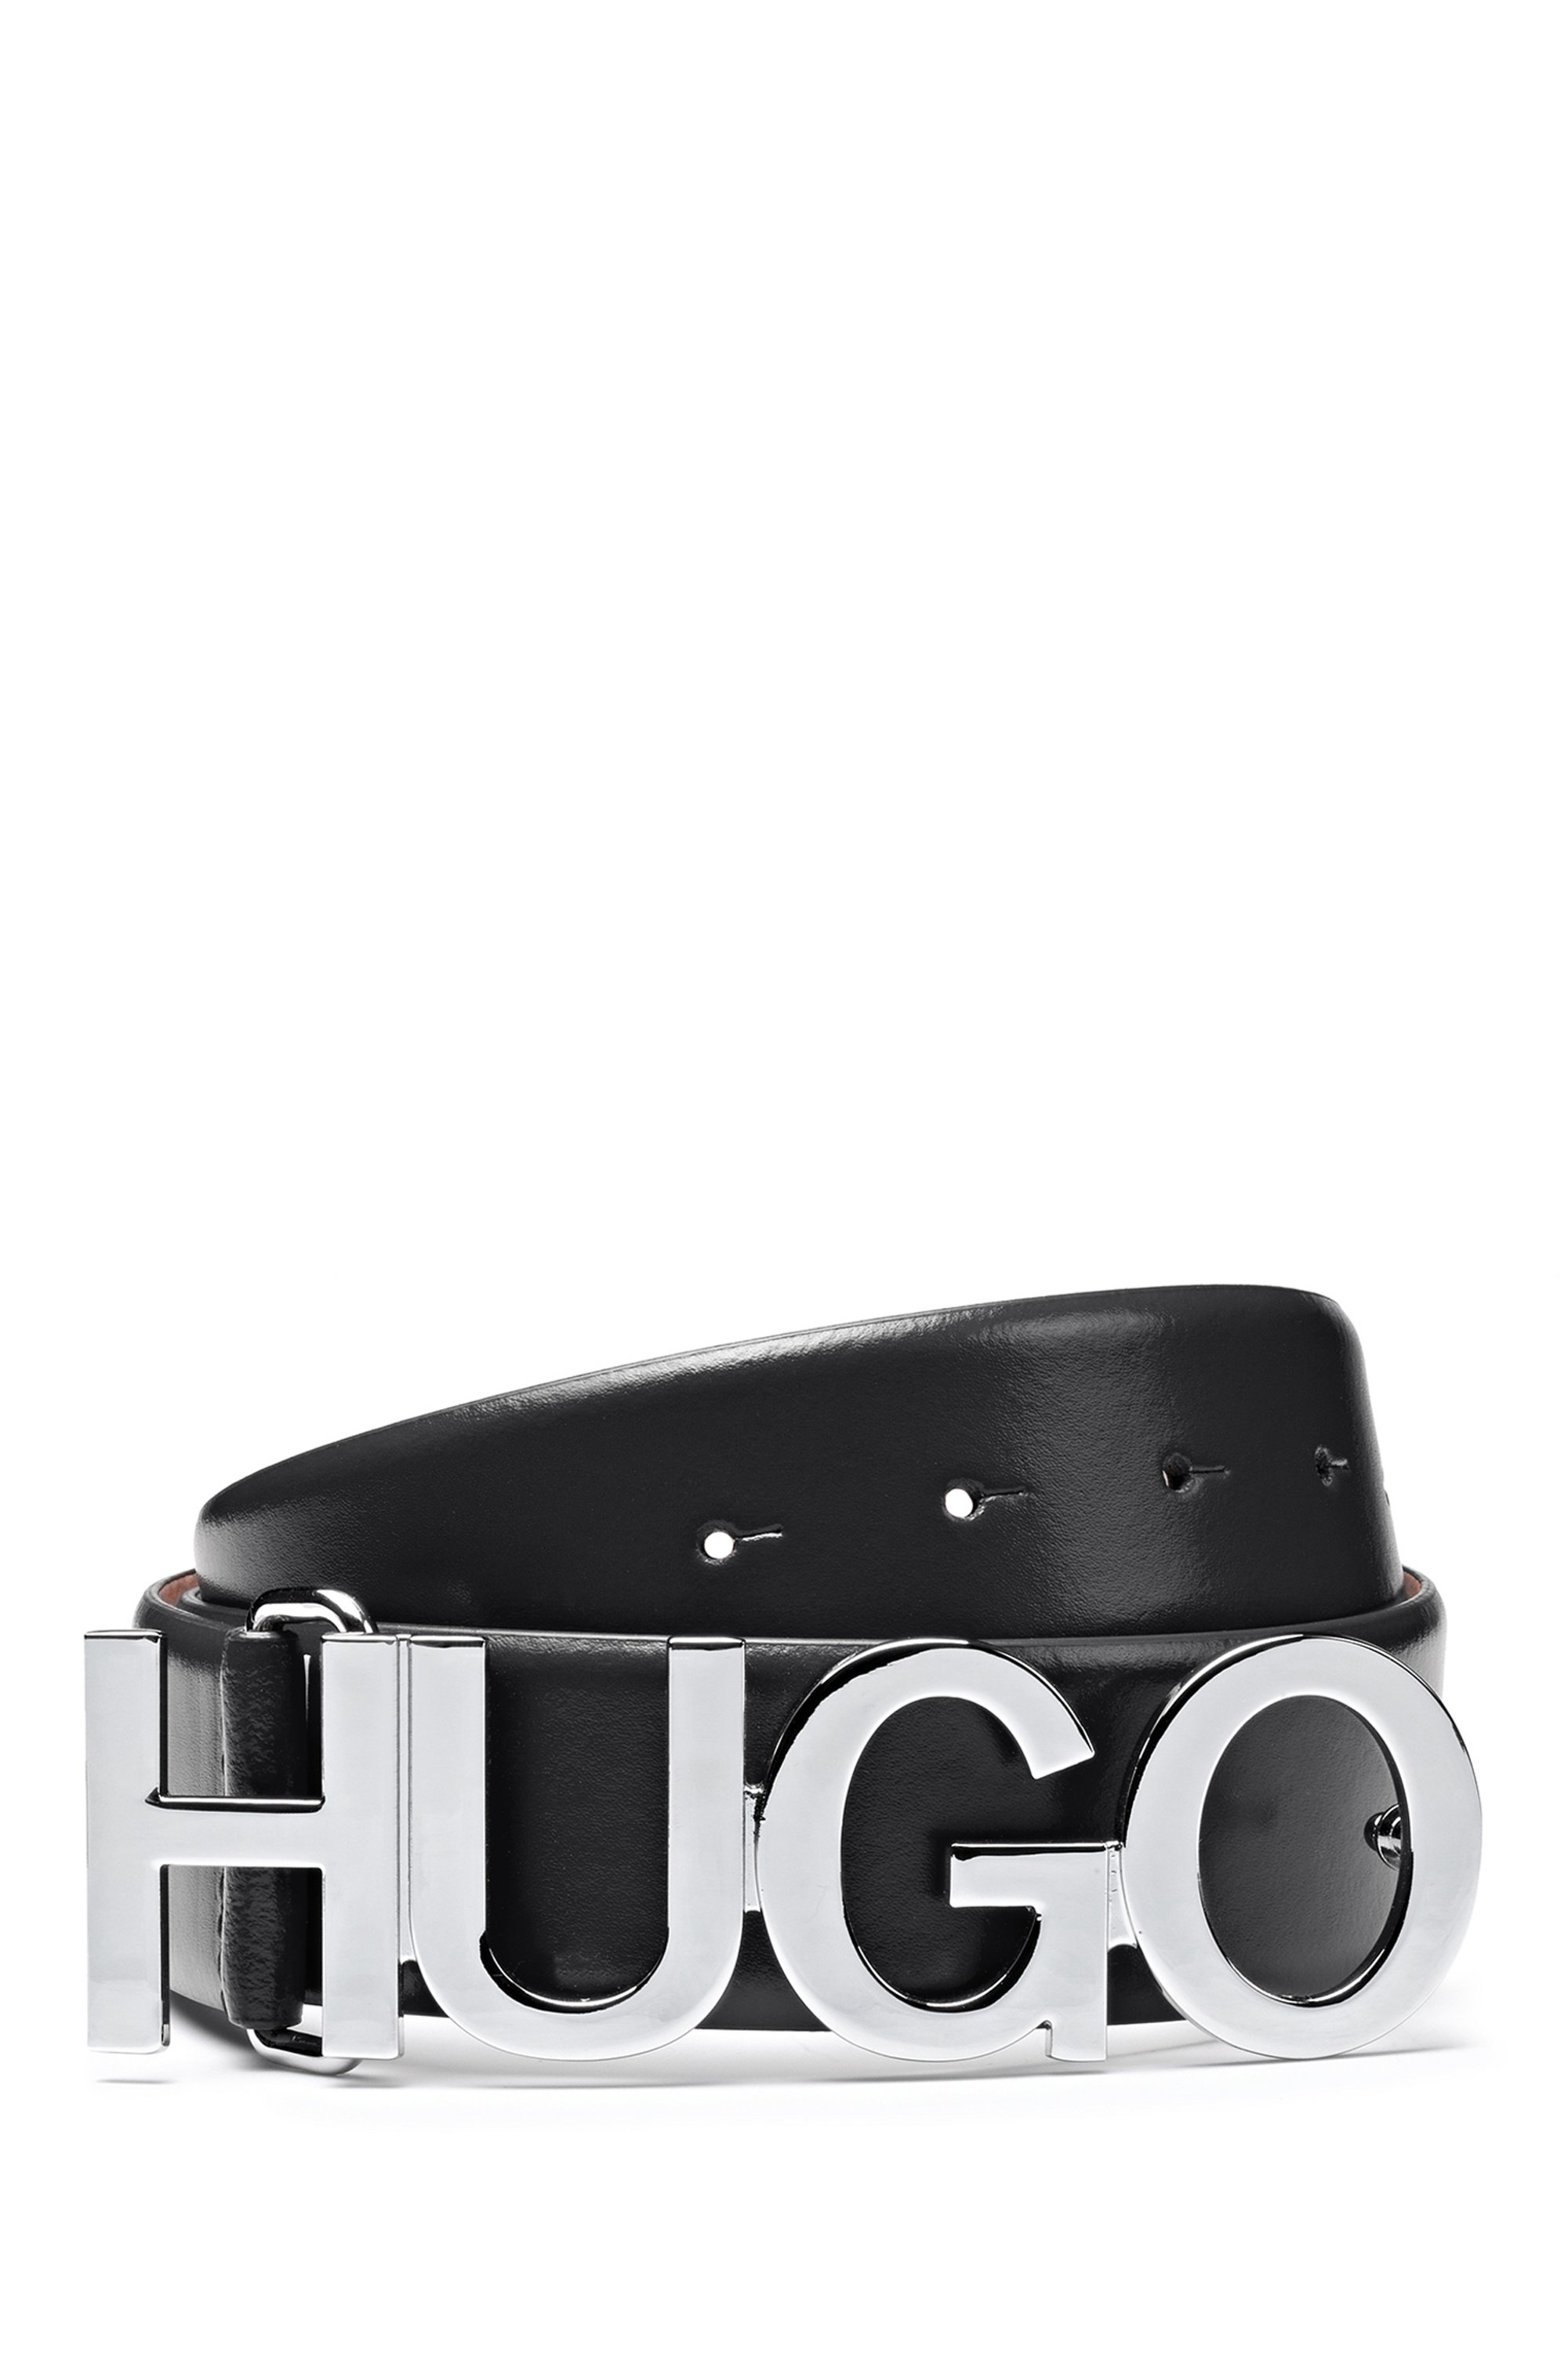 Structured-leather belt with logo buckle in polished metal, Black